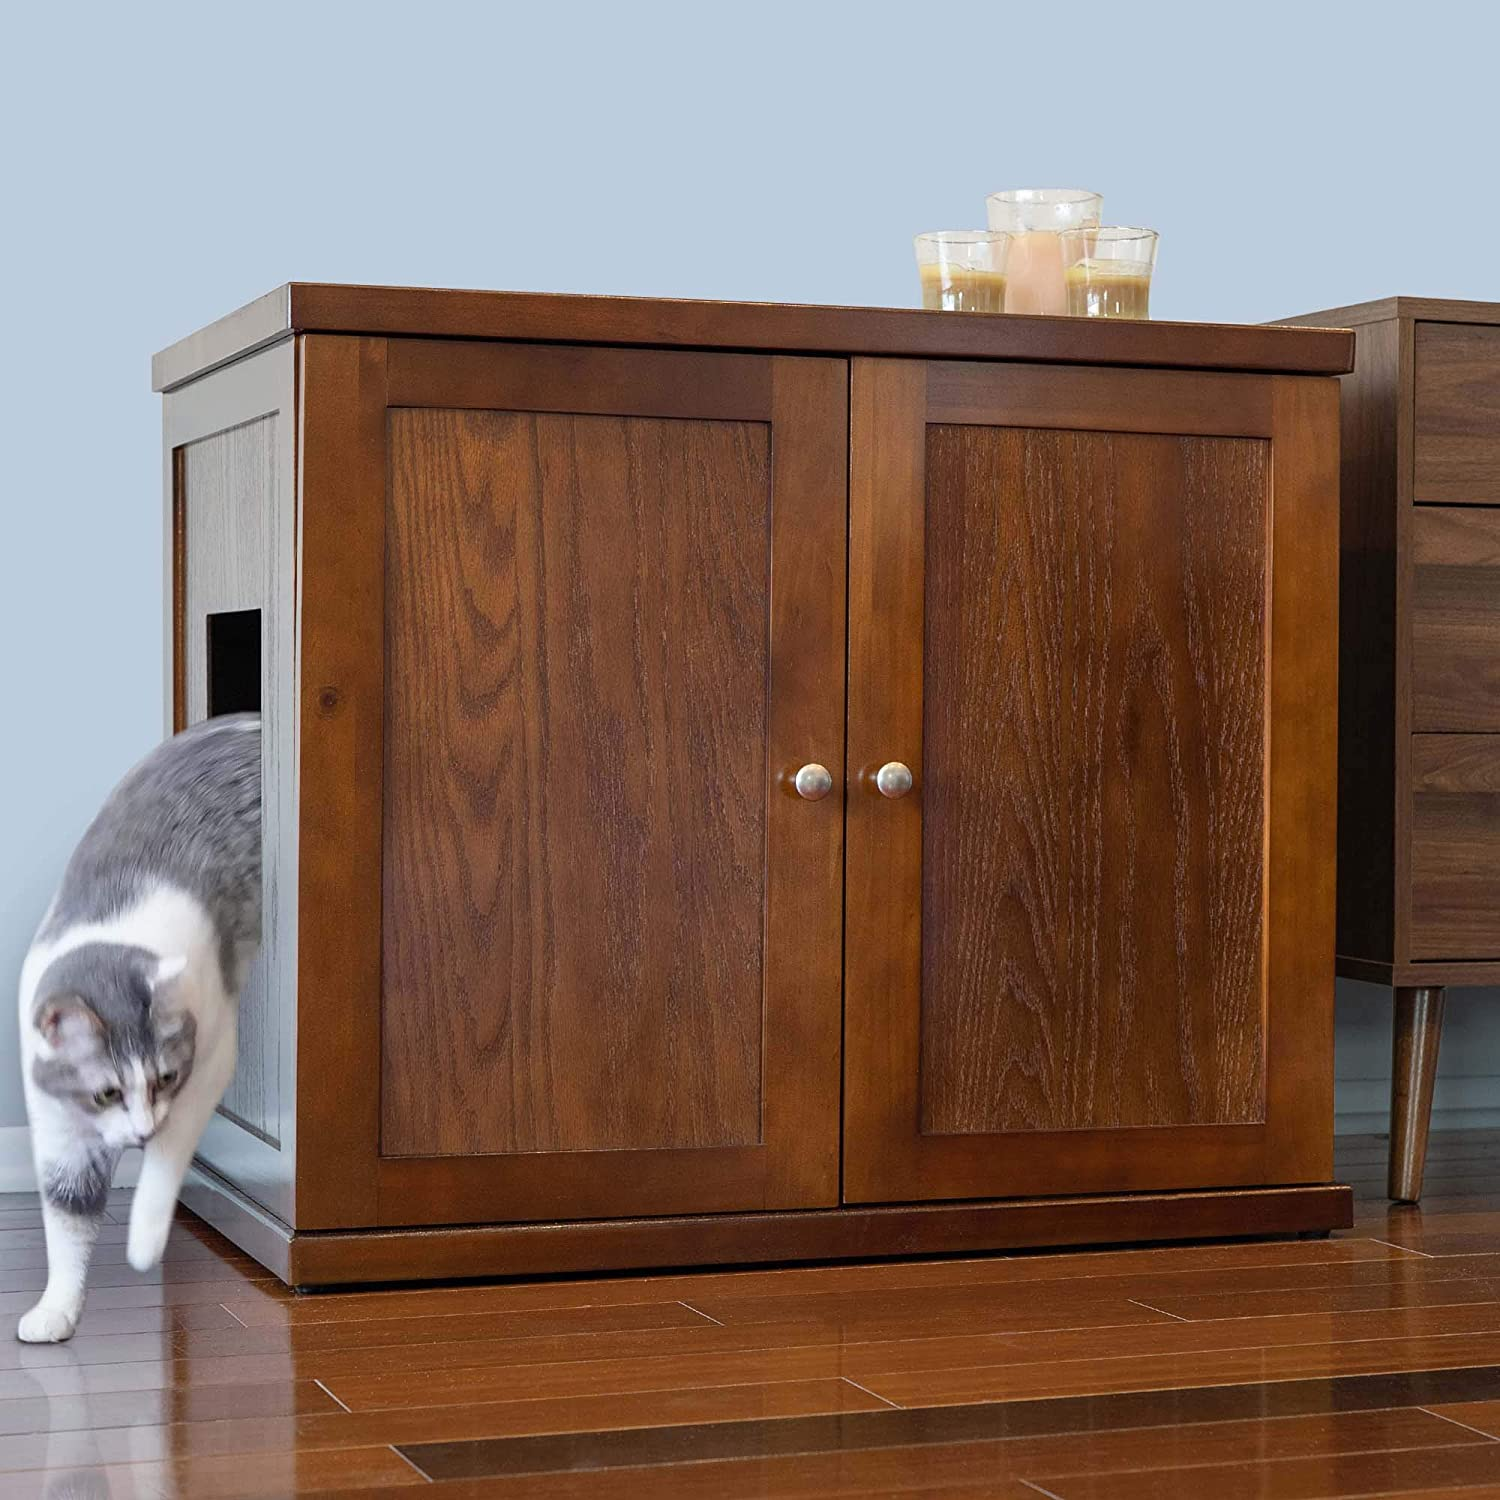 THE REFINED FELINE Cat Litter Box Enclosure Cabinet, Hidden Litter Tray Cat Furniture, Large + XLarge, Modern Style, Mahogany Color